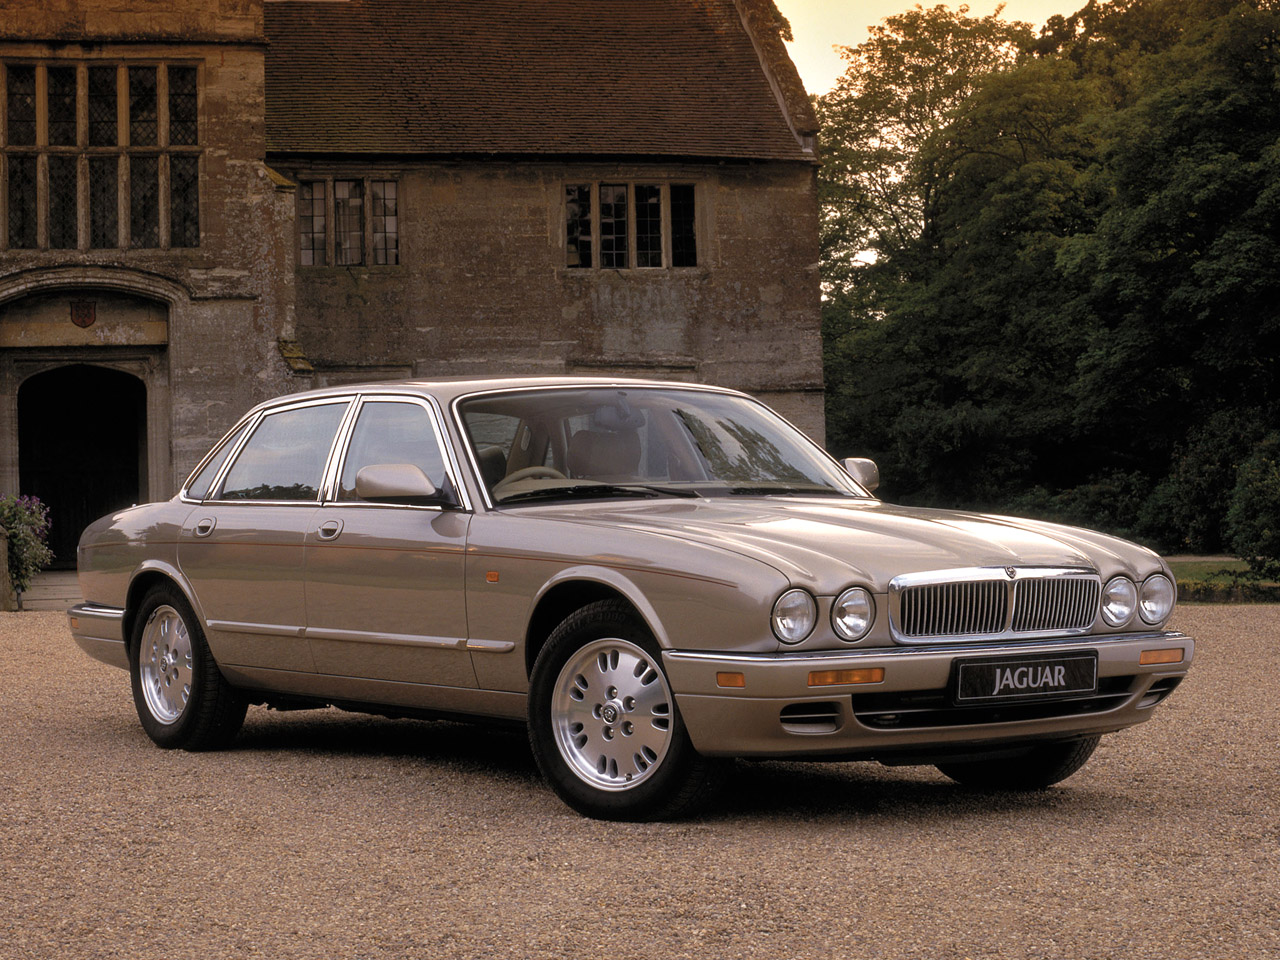 1990 Jaguar Xj-series #4